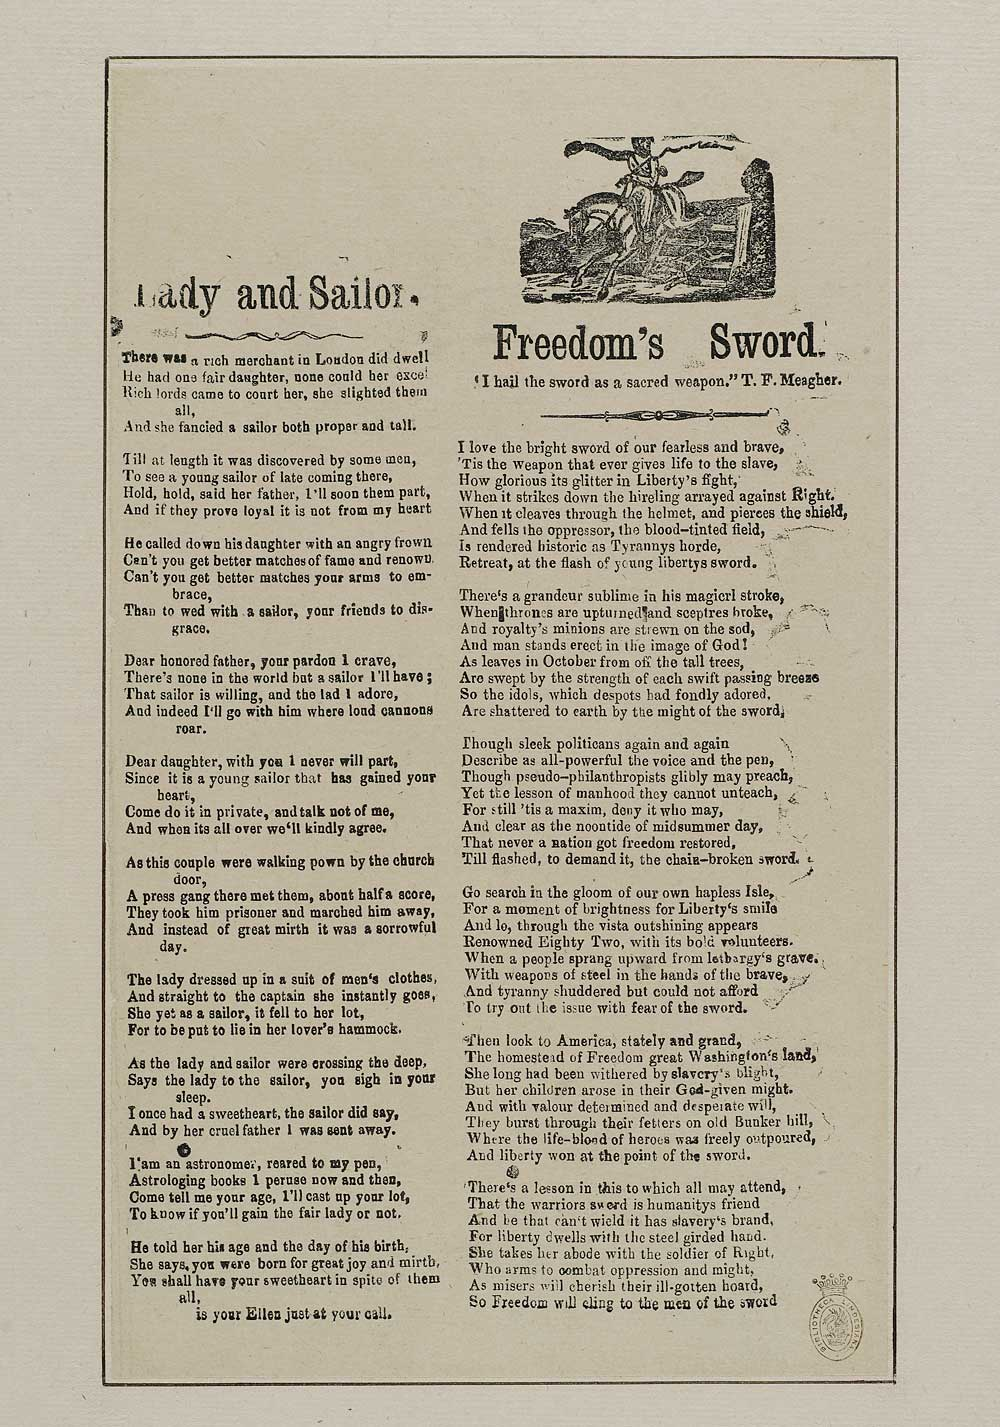 Lady and sailor - Courtship & marriage - English ballads